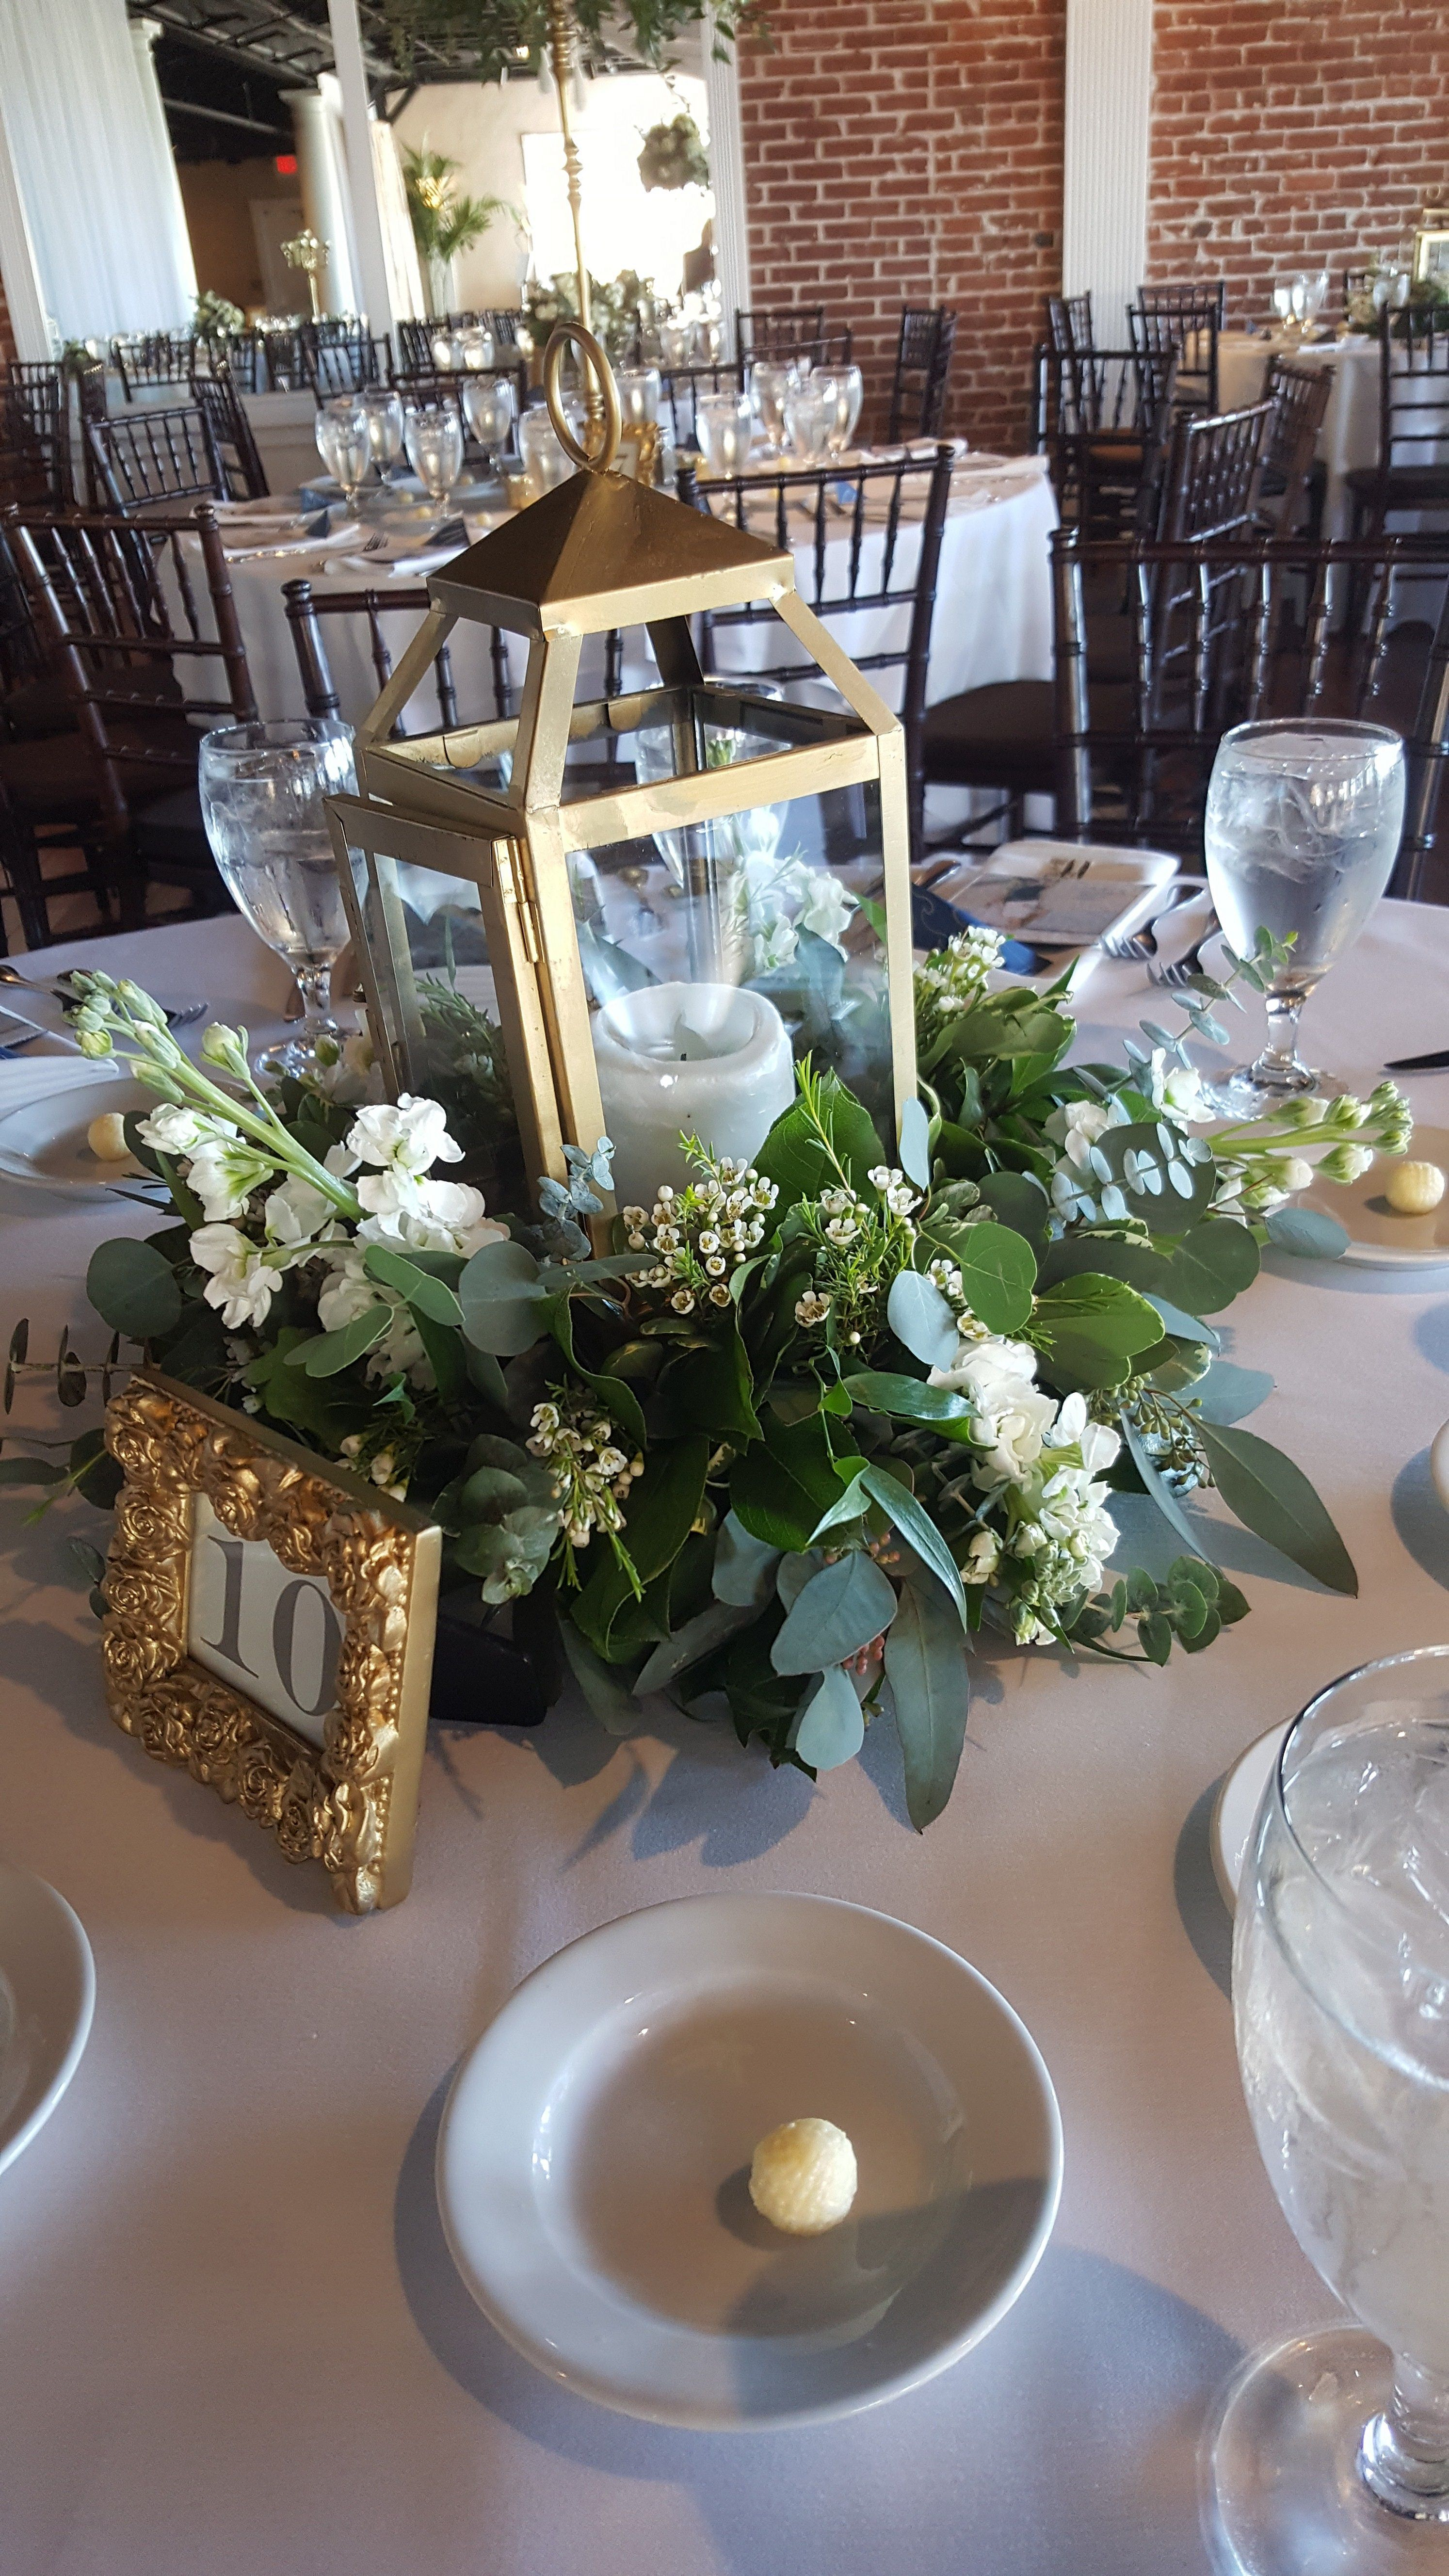 5 Breathtaking Non-Traditional Centerpieces